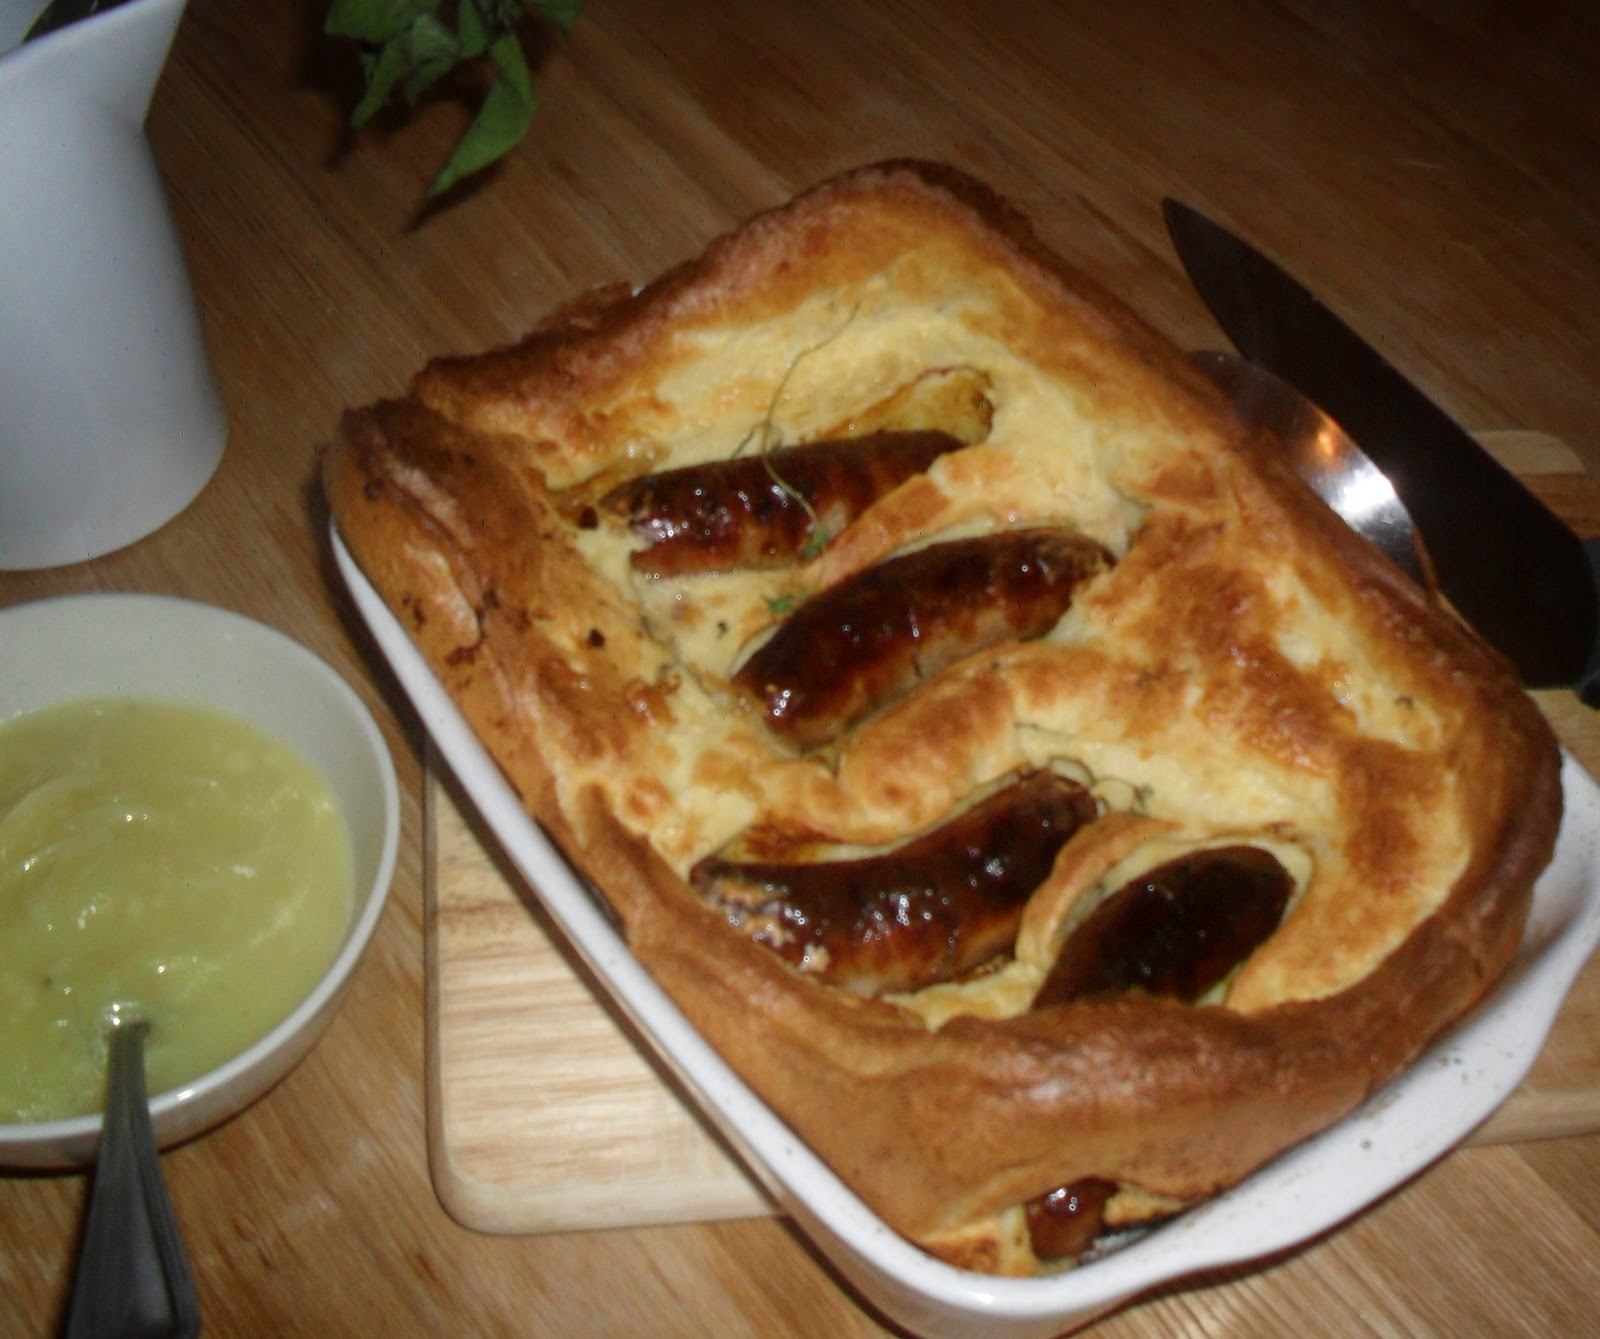 Biscuits & Blackites: Toad in the hole